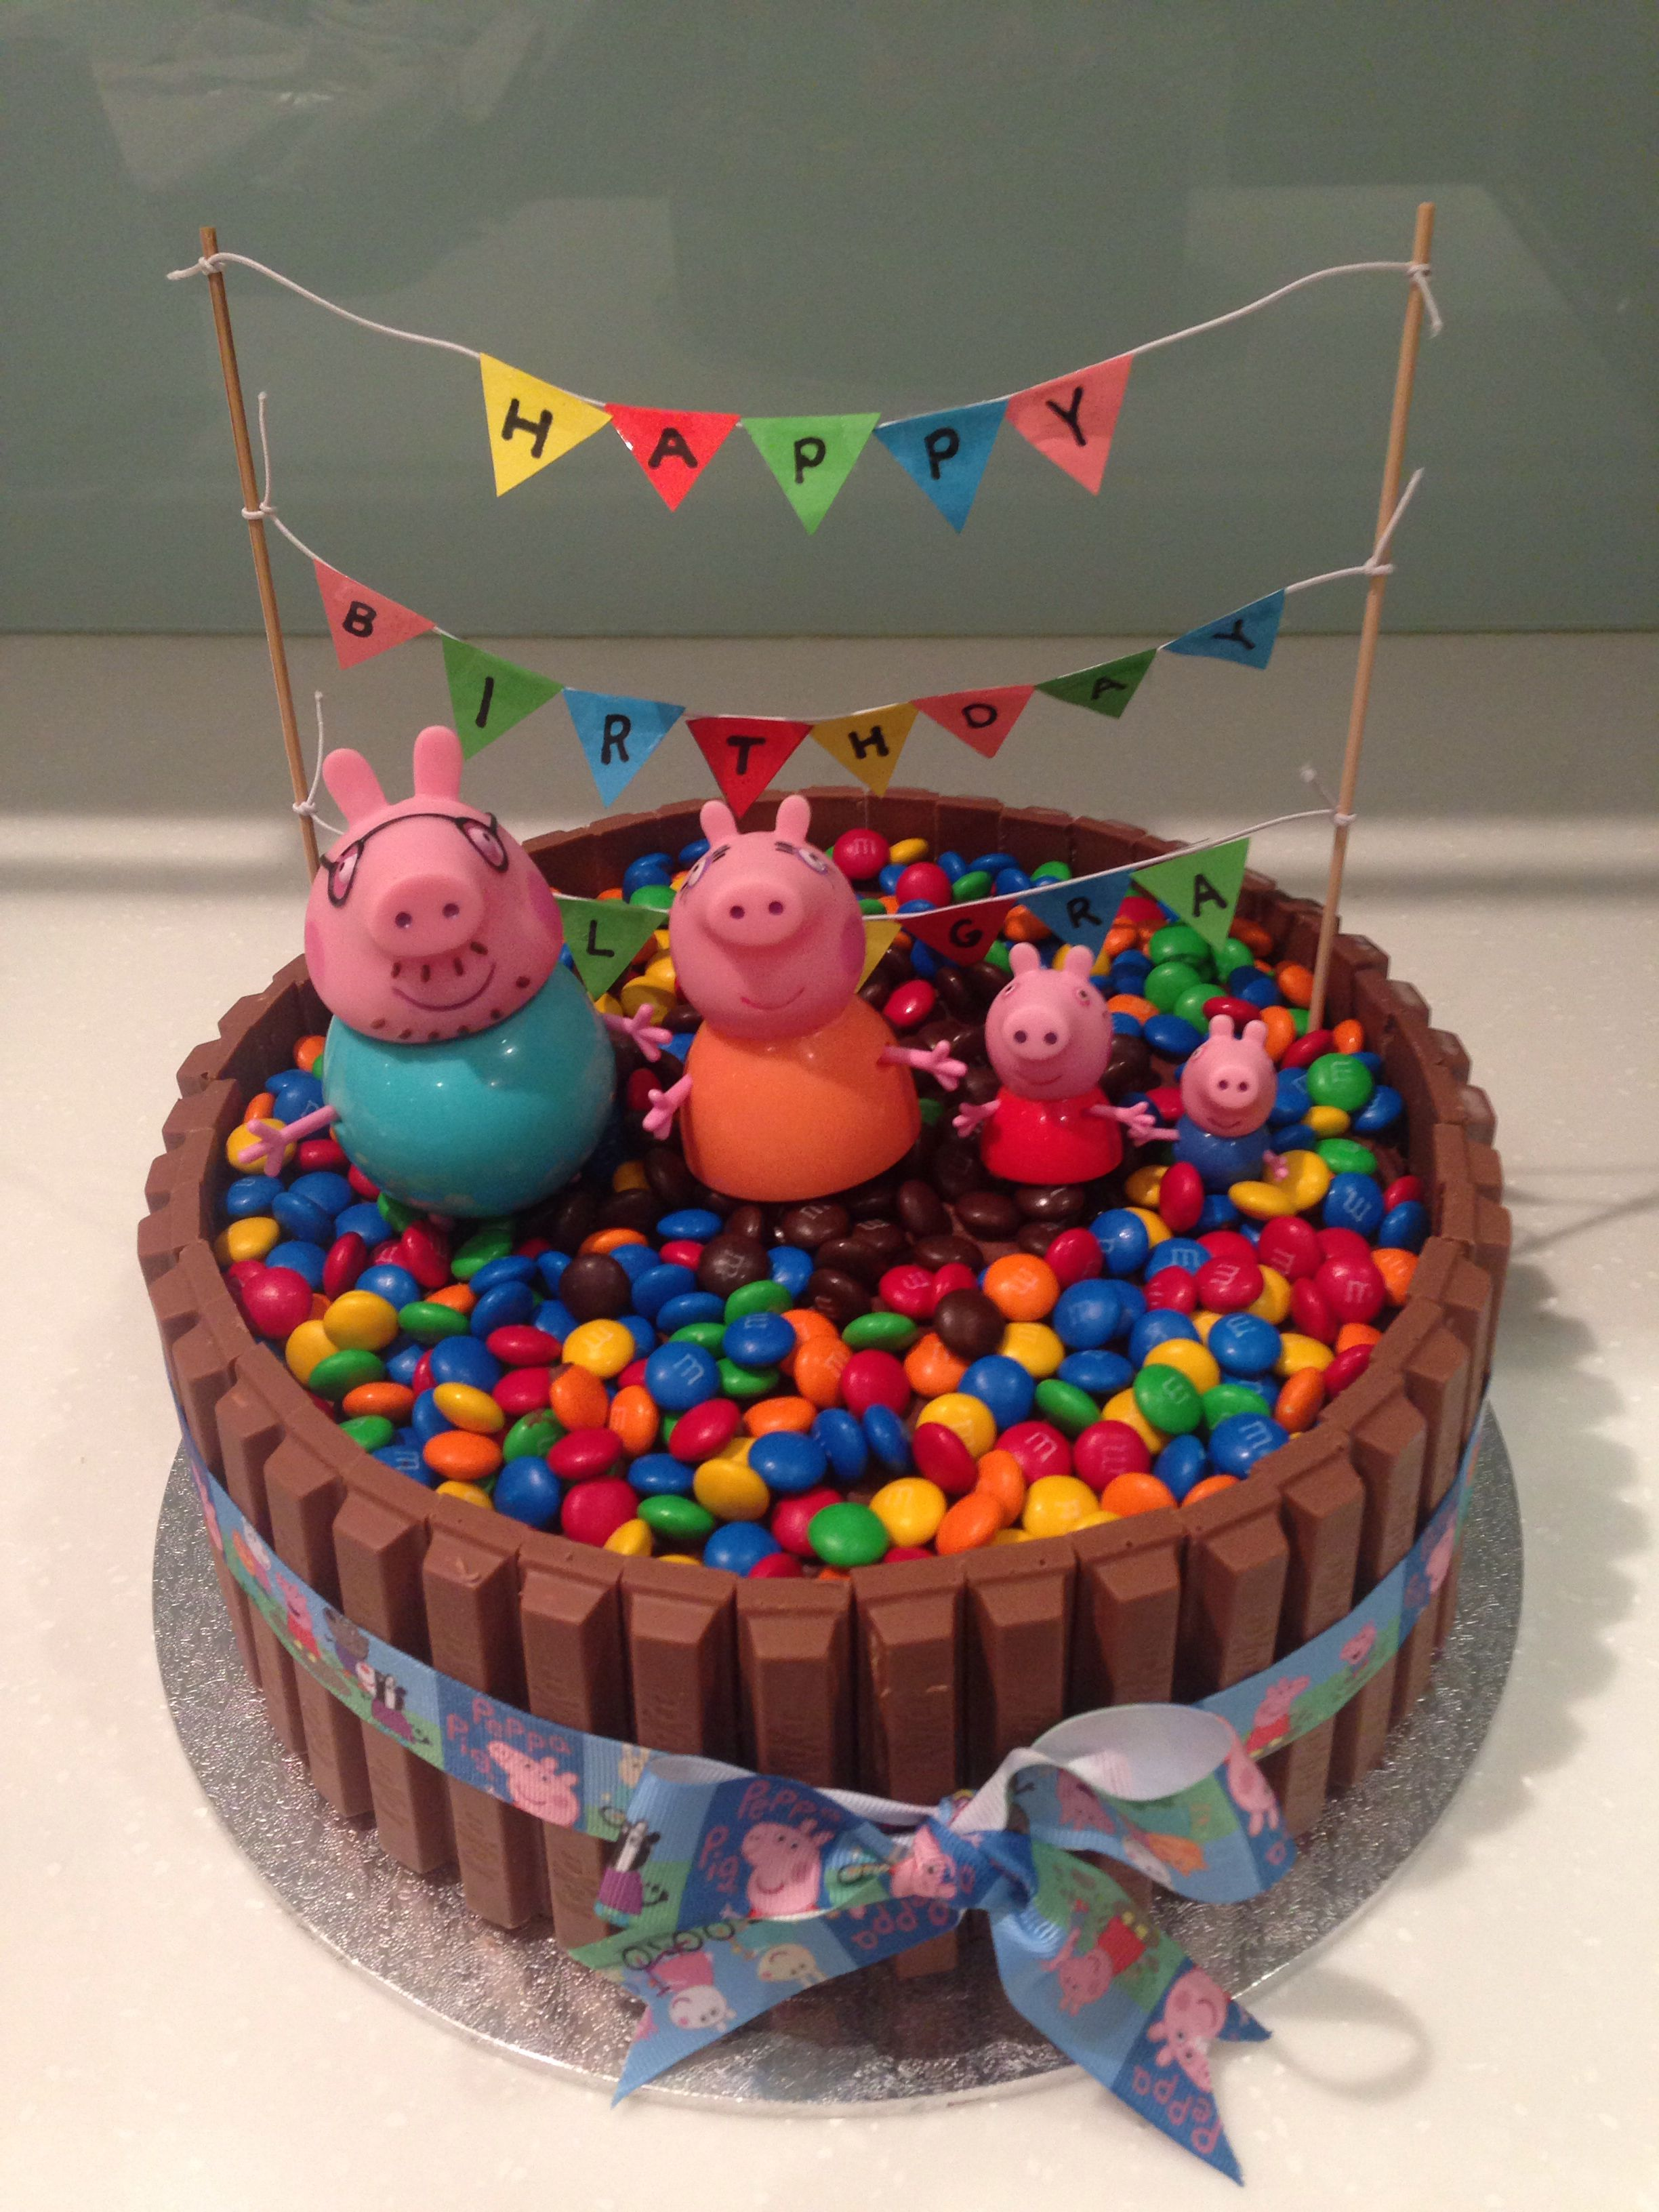 Pin By Pia Arbulu On Laura Care Cakes Peppa Pig Birthday Cake Pig Birthday Cakes Peppa Pig Birthday Party